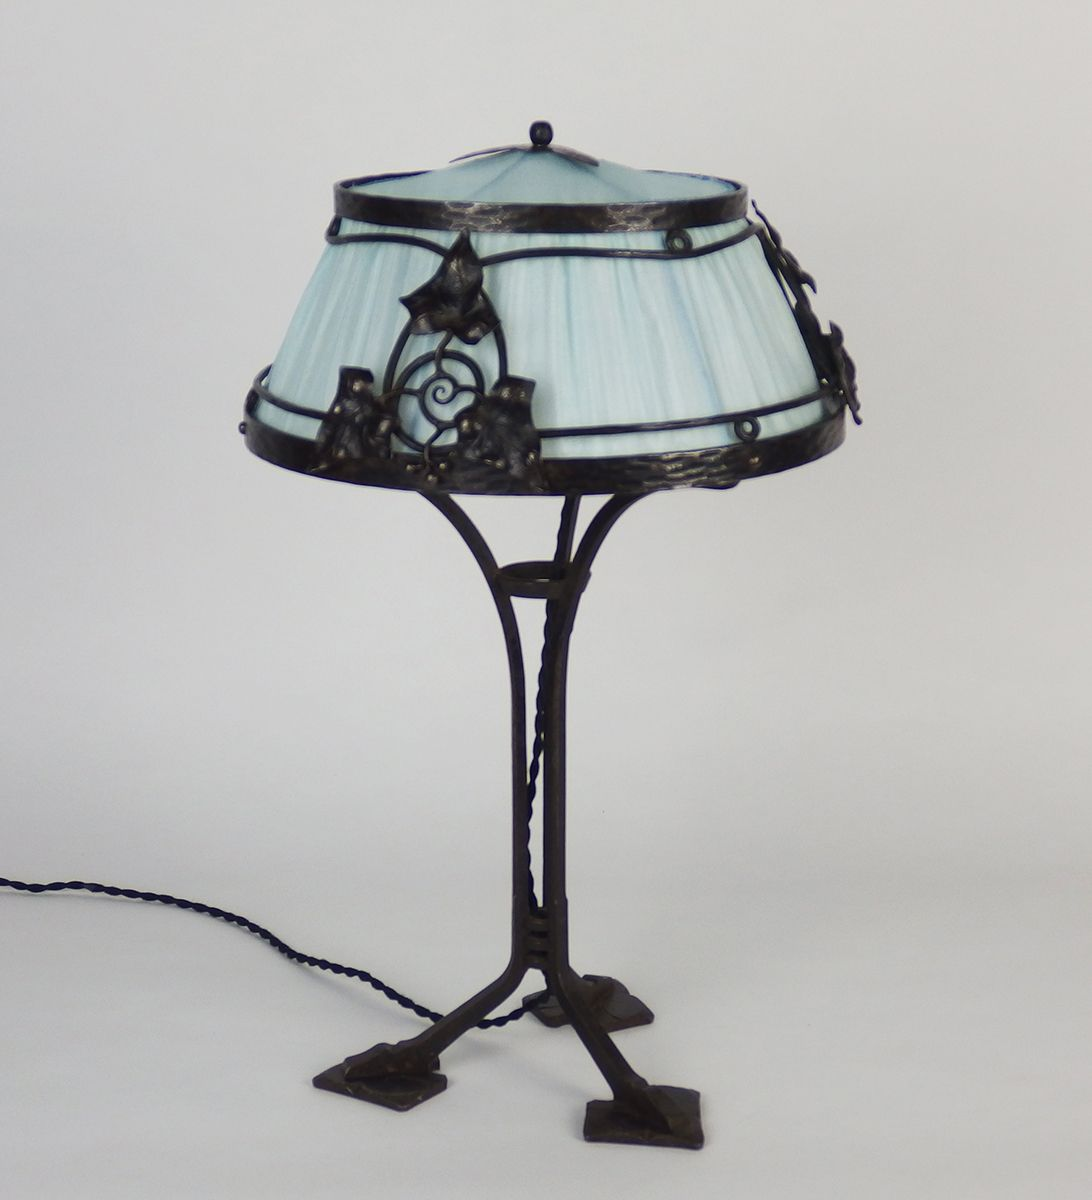 French Wrought Iron Table Lamp, 1910s For Sale At Pamono